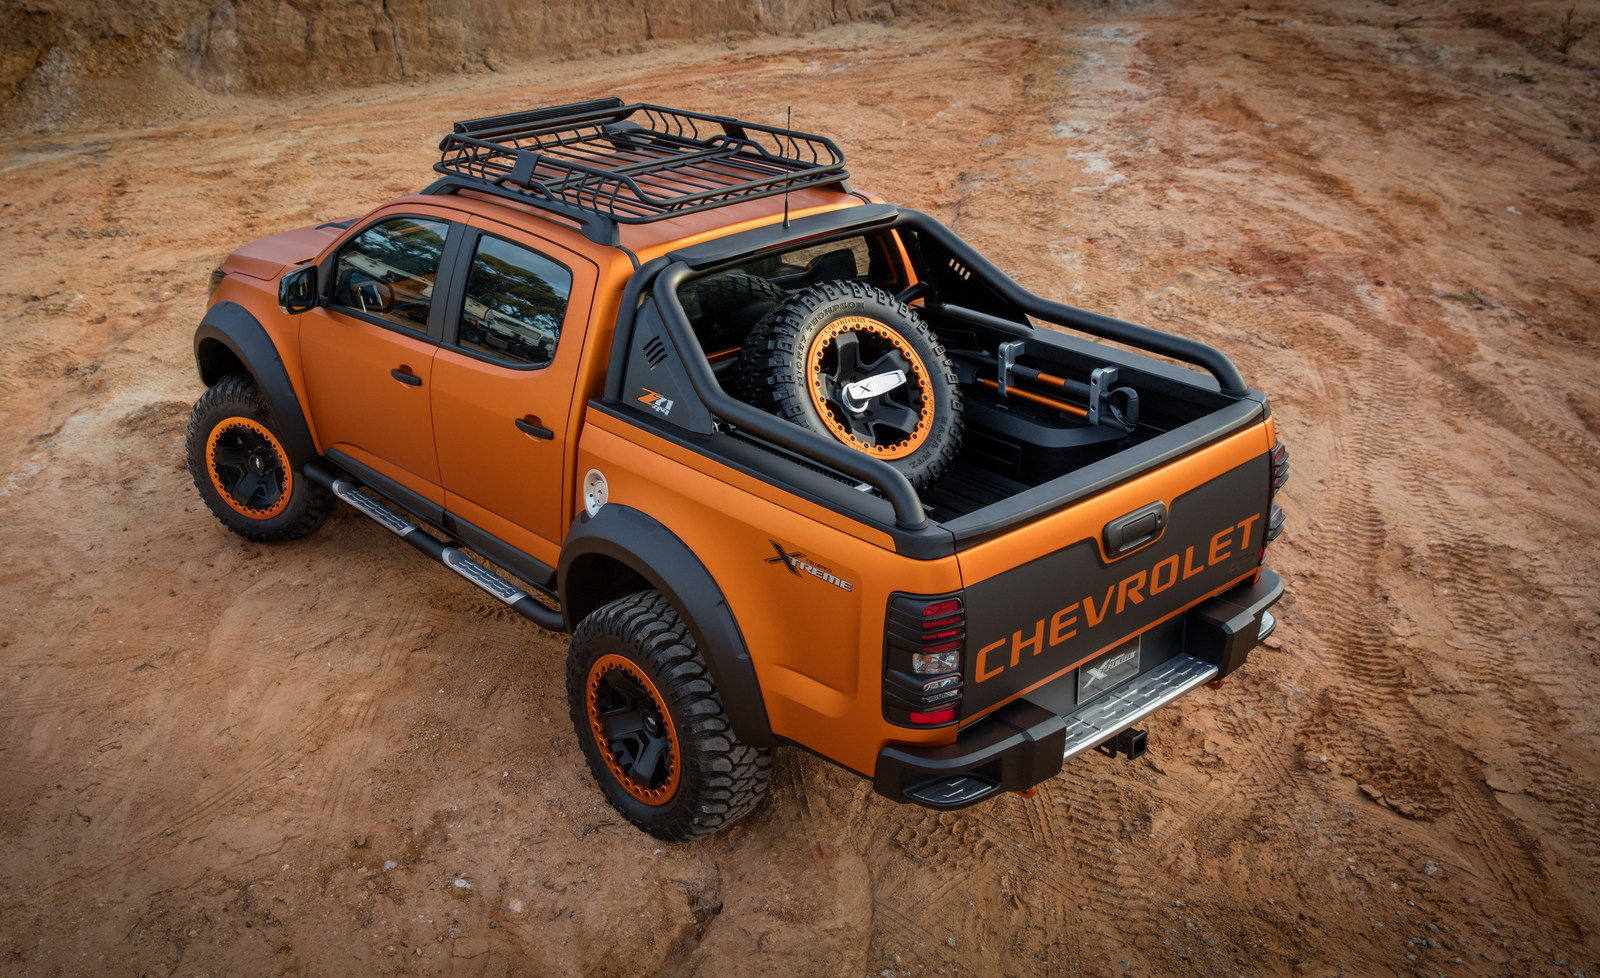 2016 chevrolet colorado xtreme picture 671545 truck review top speed. Black Bedroom Furniture Sets. Home Design Ideas